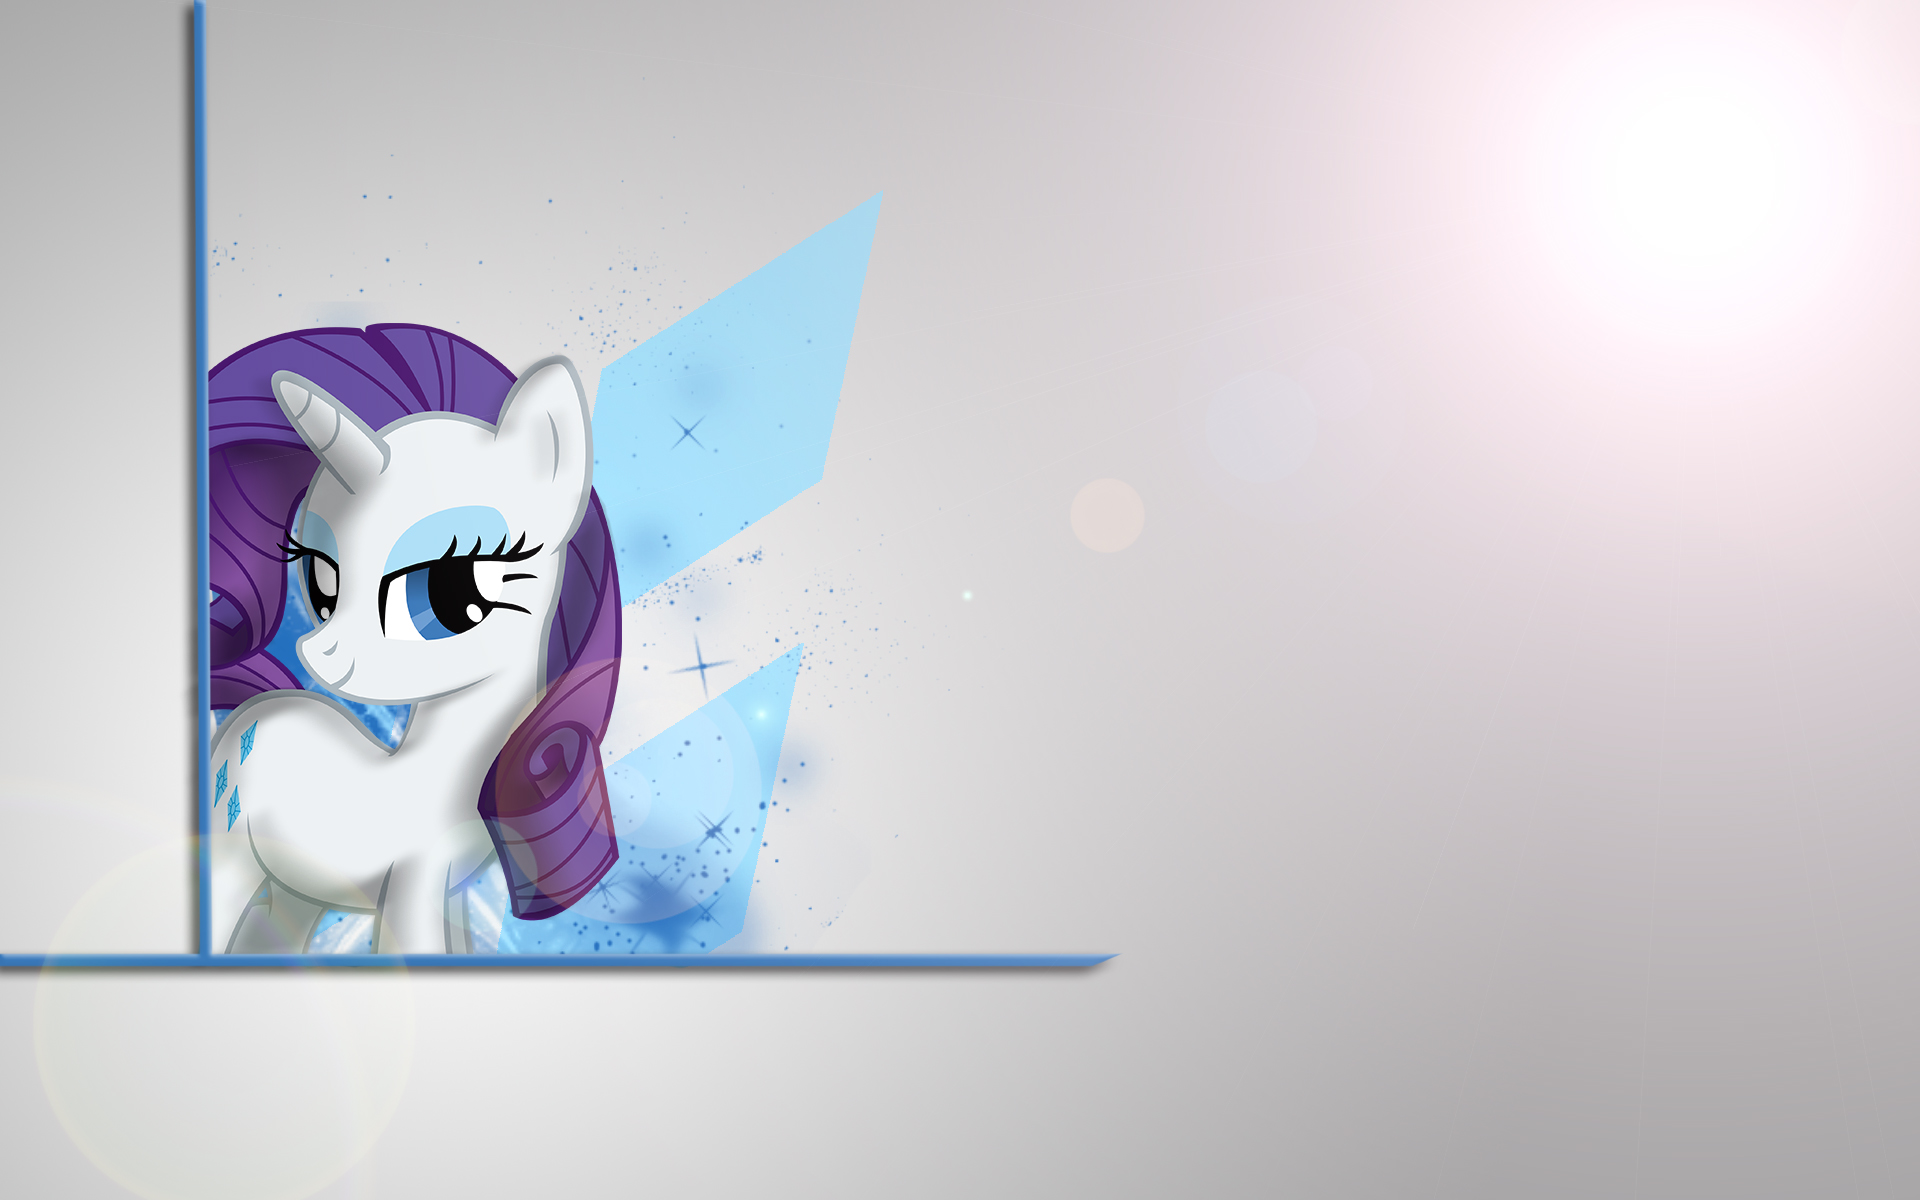 Rarity Simplistic Wallpaper by drewdini and Woodyz611